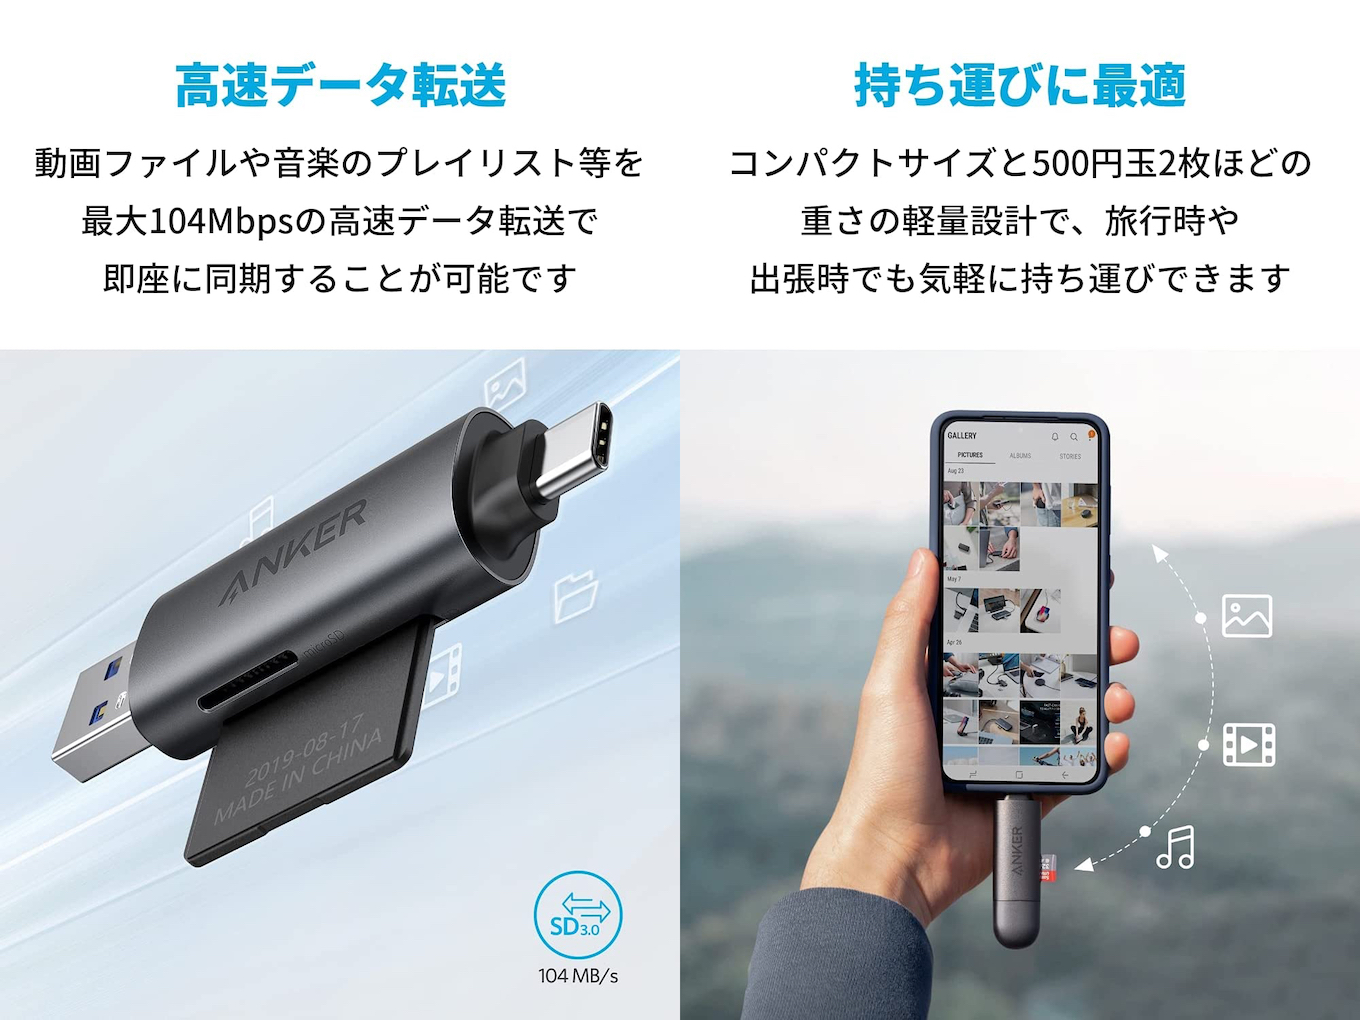 Anker USB-C & USB-A PowerExpand 2-in-1 SD 3.0 カードリーダー